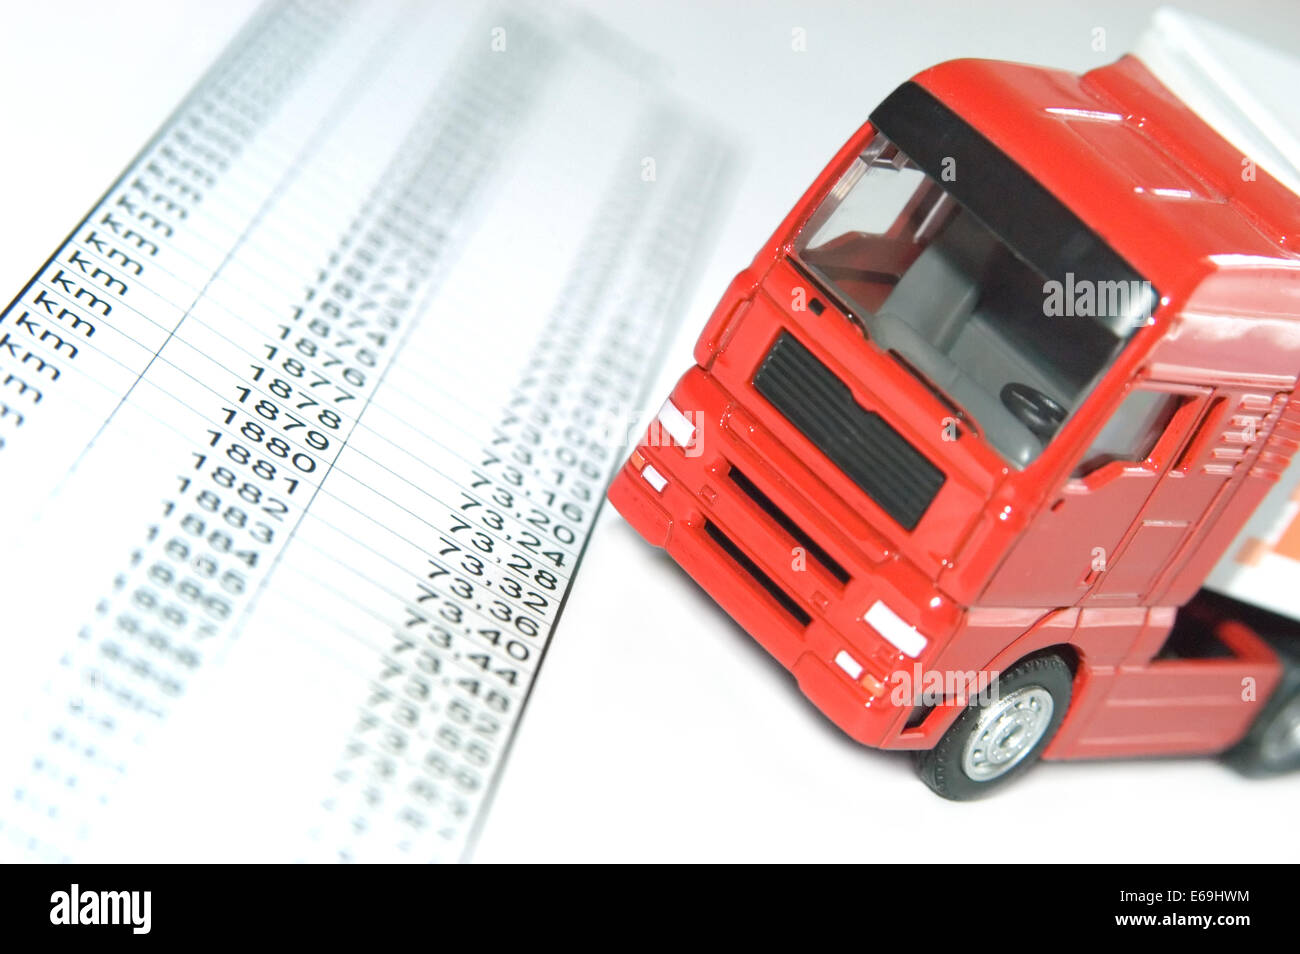 toll,truck toll - Stock Image